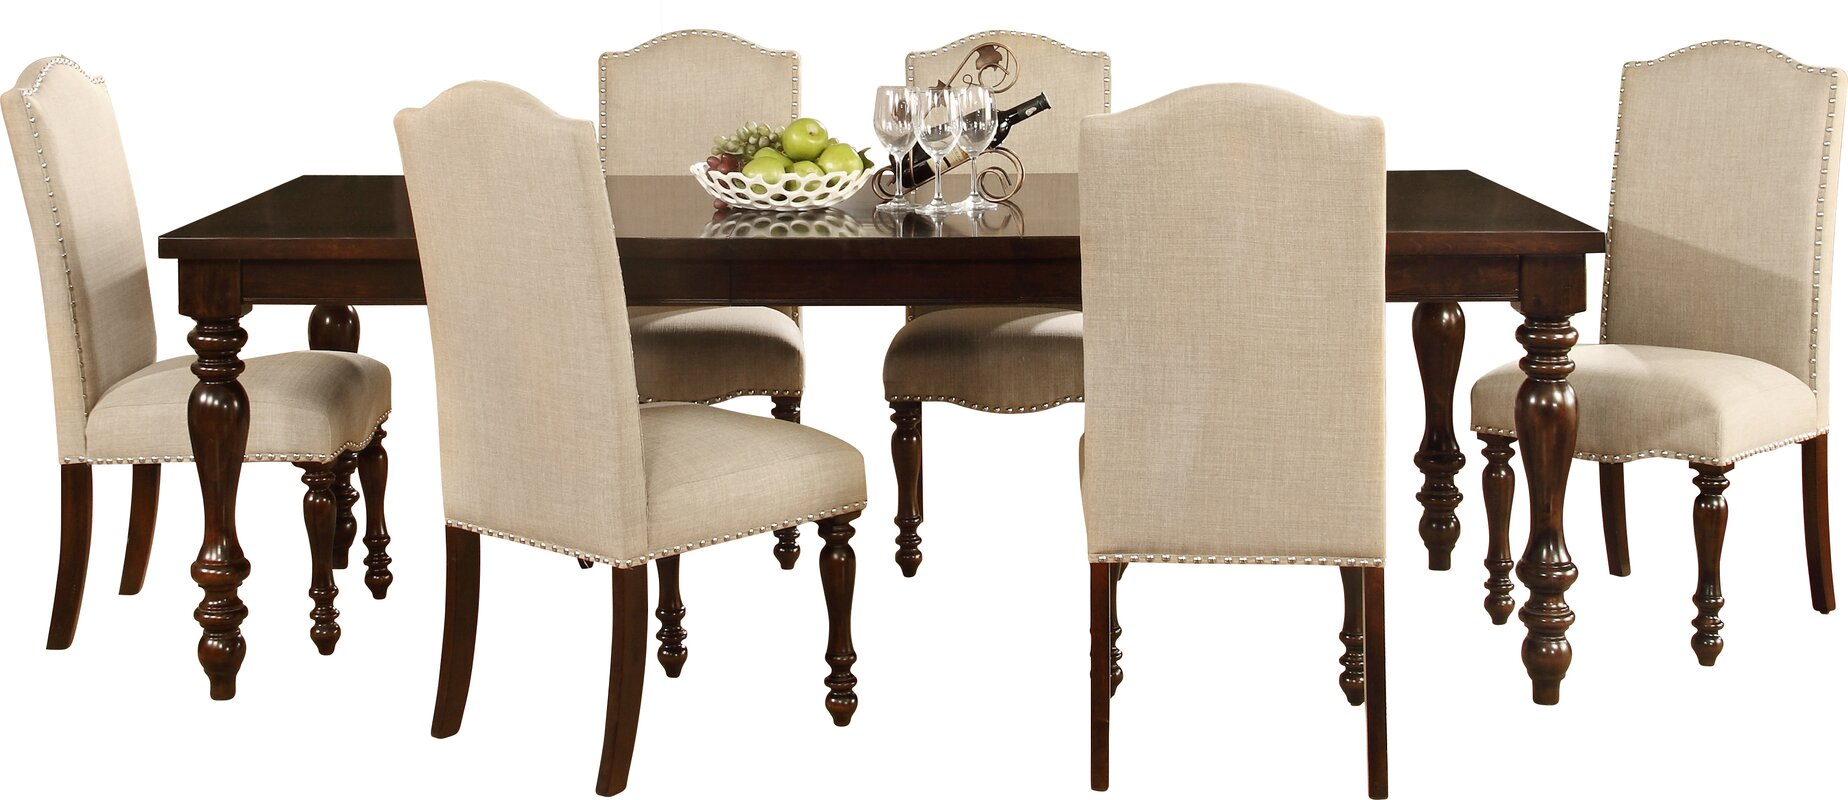 ... You Might Also Like Foster 7 Piece Dining Set For $959.99 ...